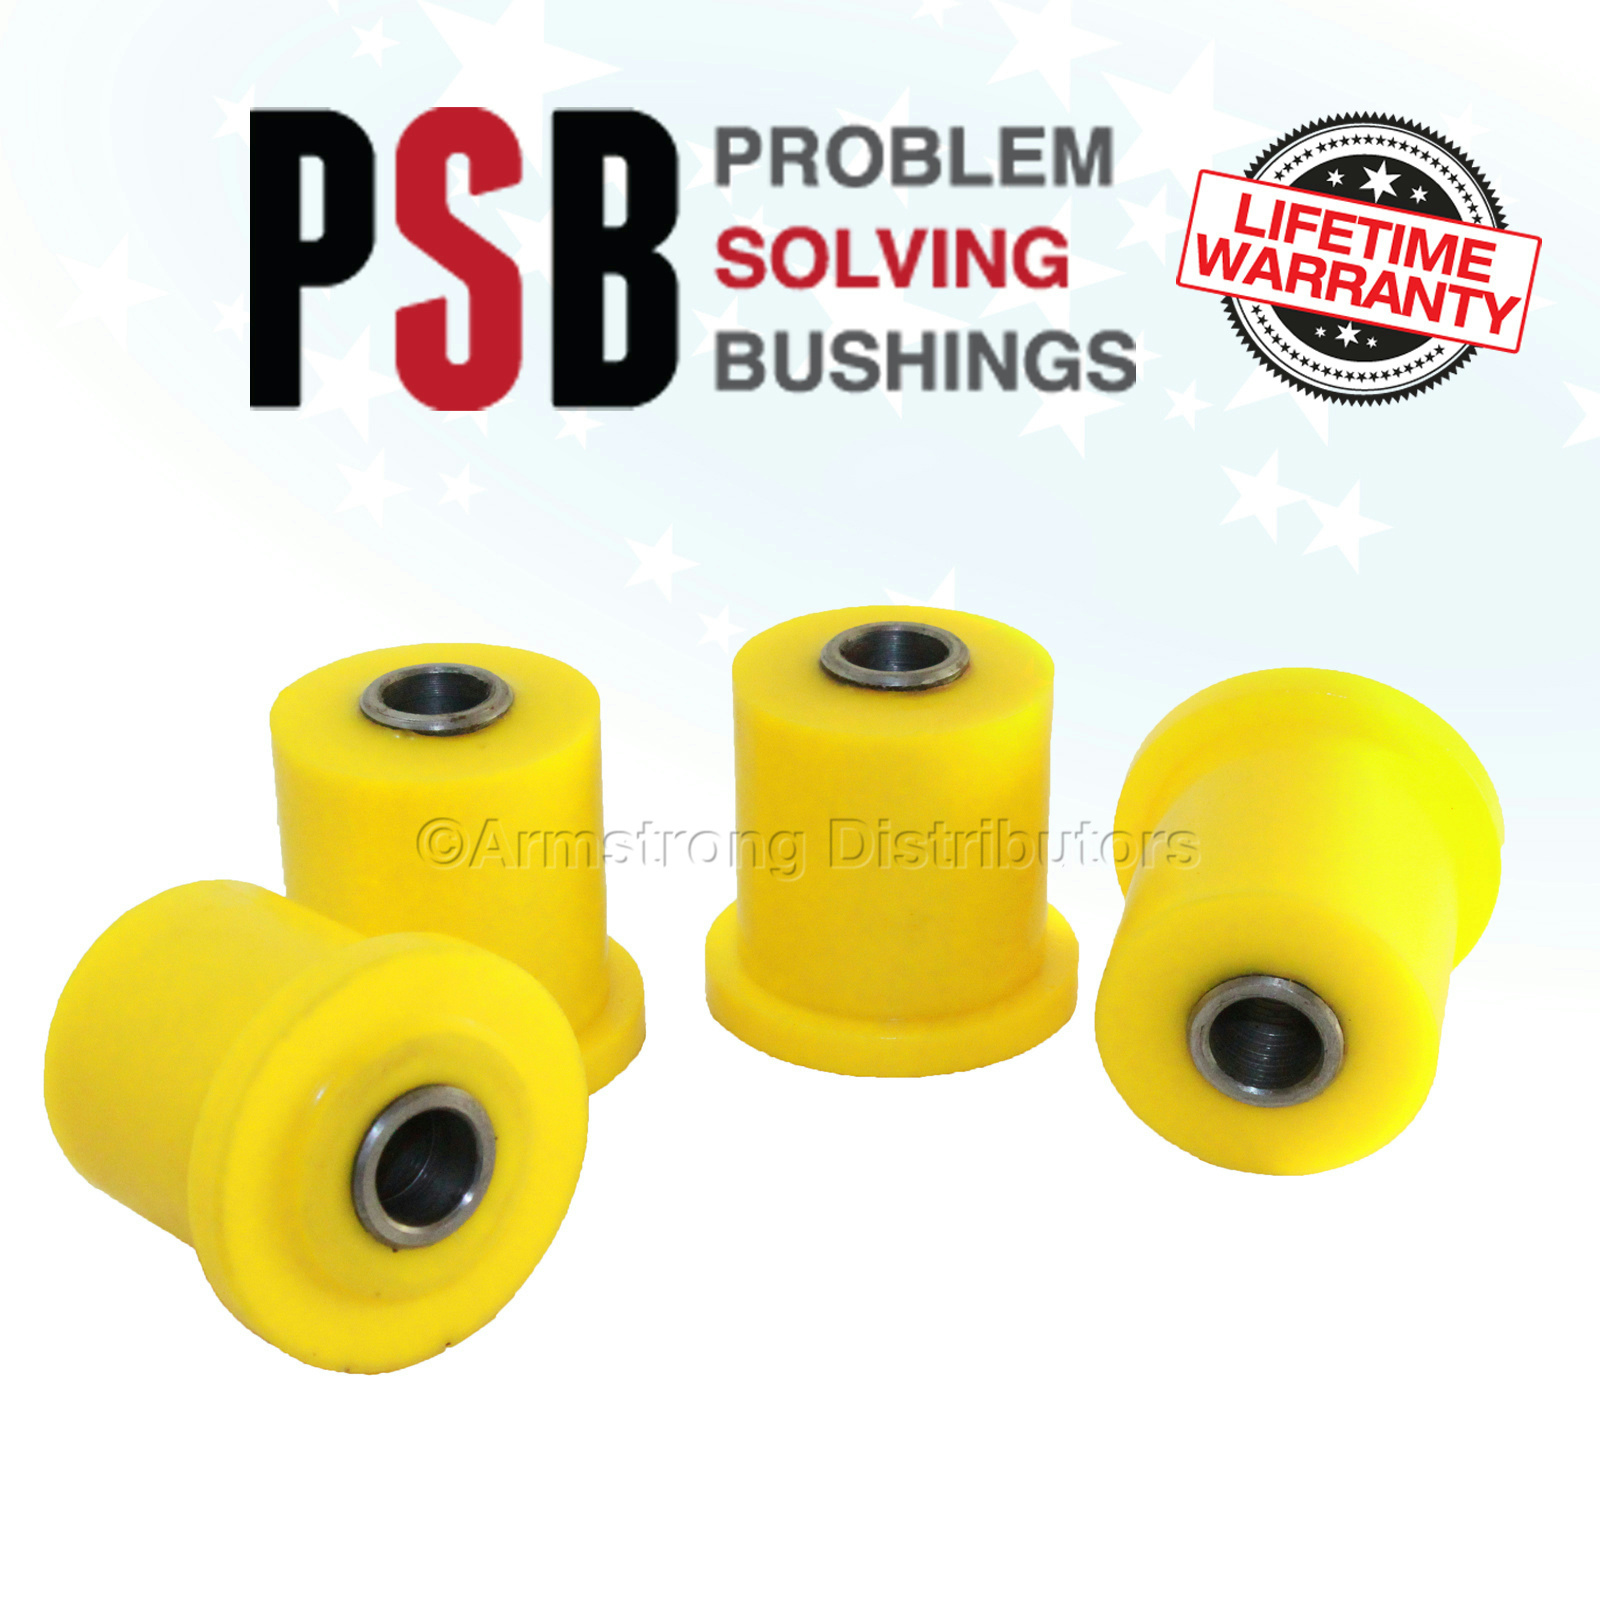 Details about 4x Front Upper Arm Bushing Kit Fits 04-07 Frontier D40 05-14  Pathfinder PSB 228